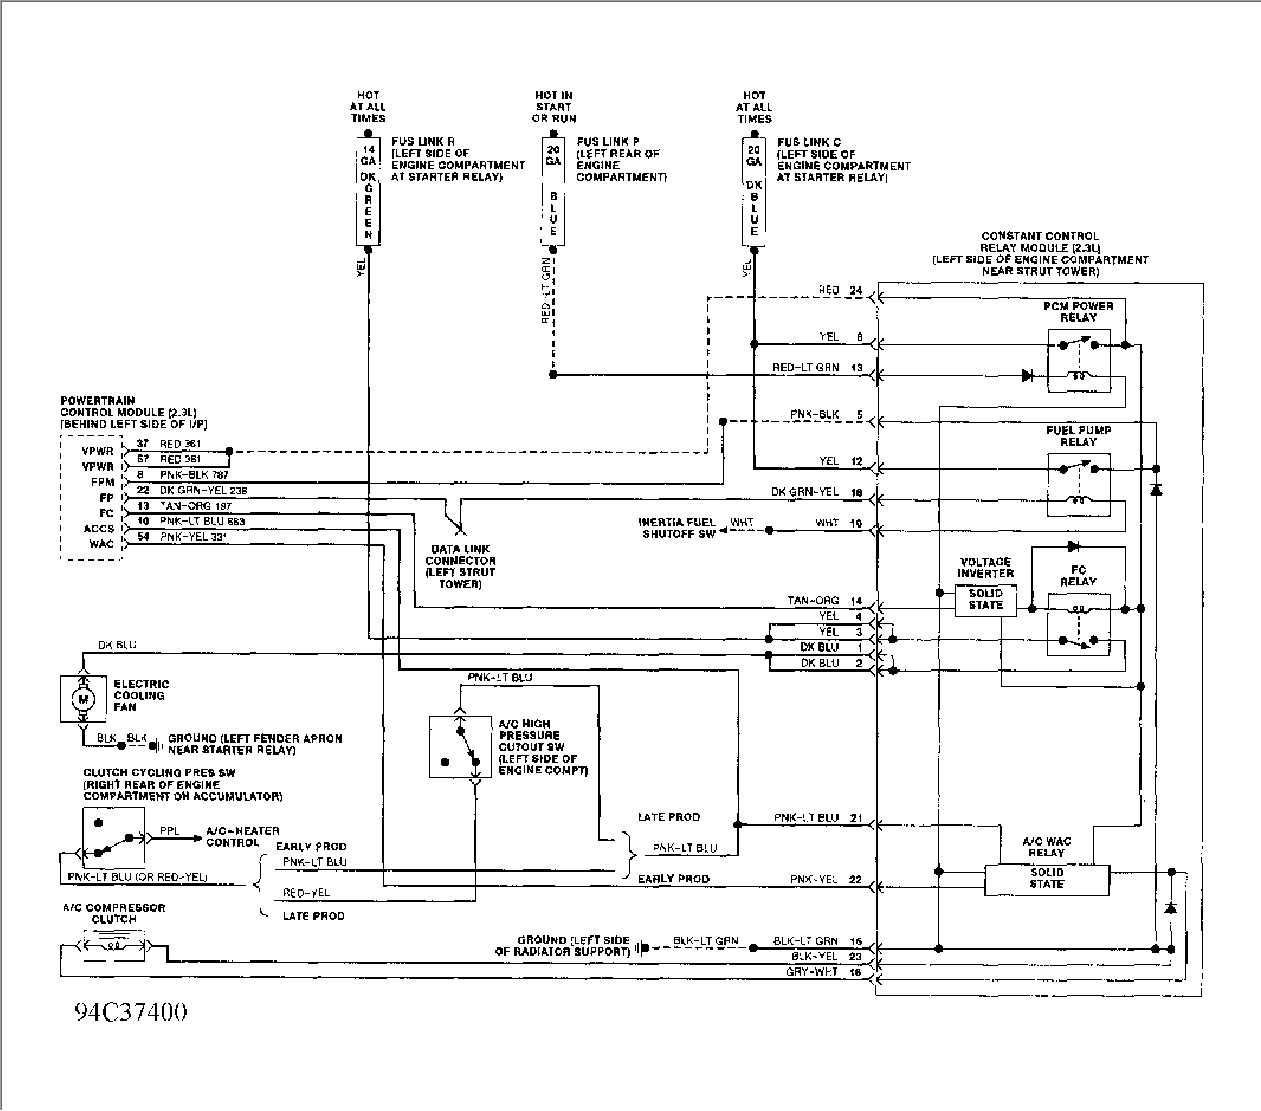 1991 ford tempo wiring diagram wiring diagram 1955 dodge wiring diagram ford tempo wiring diagram #5